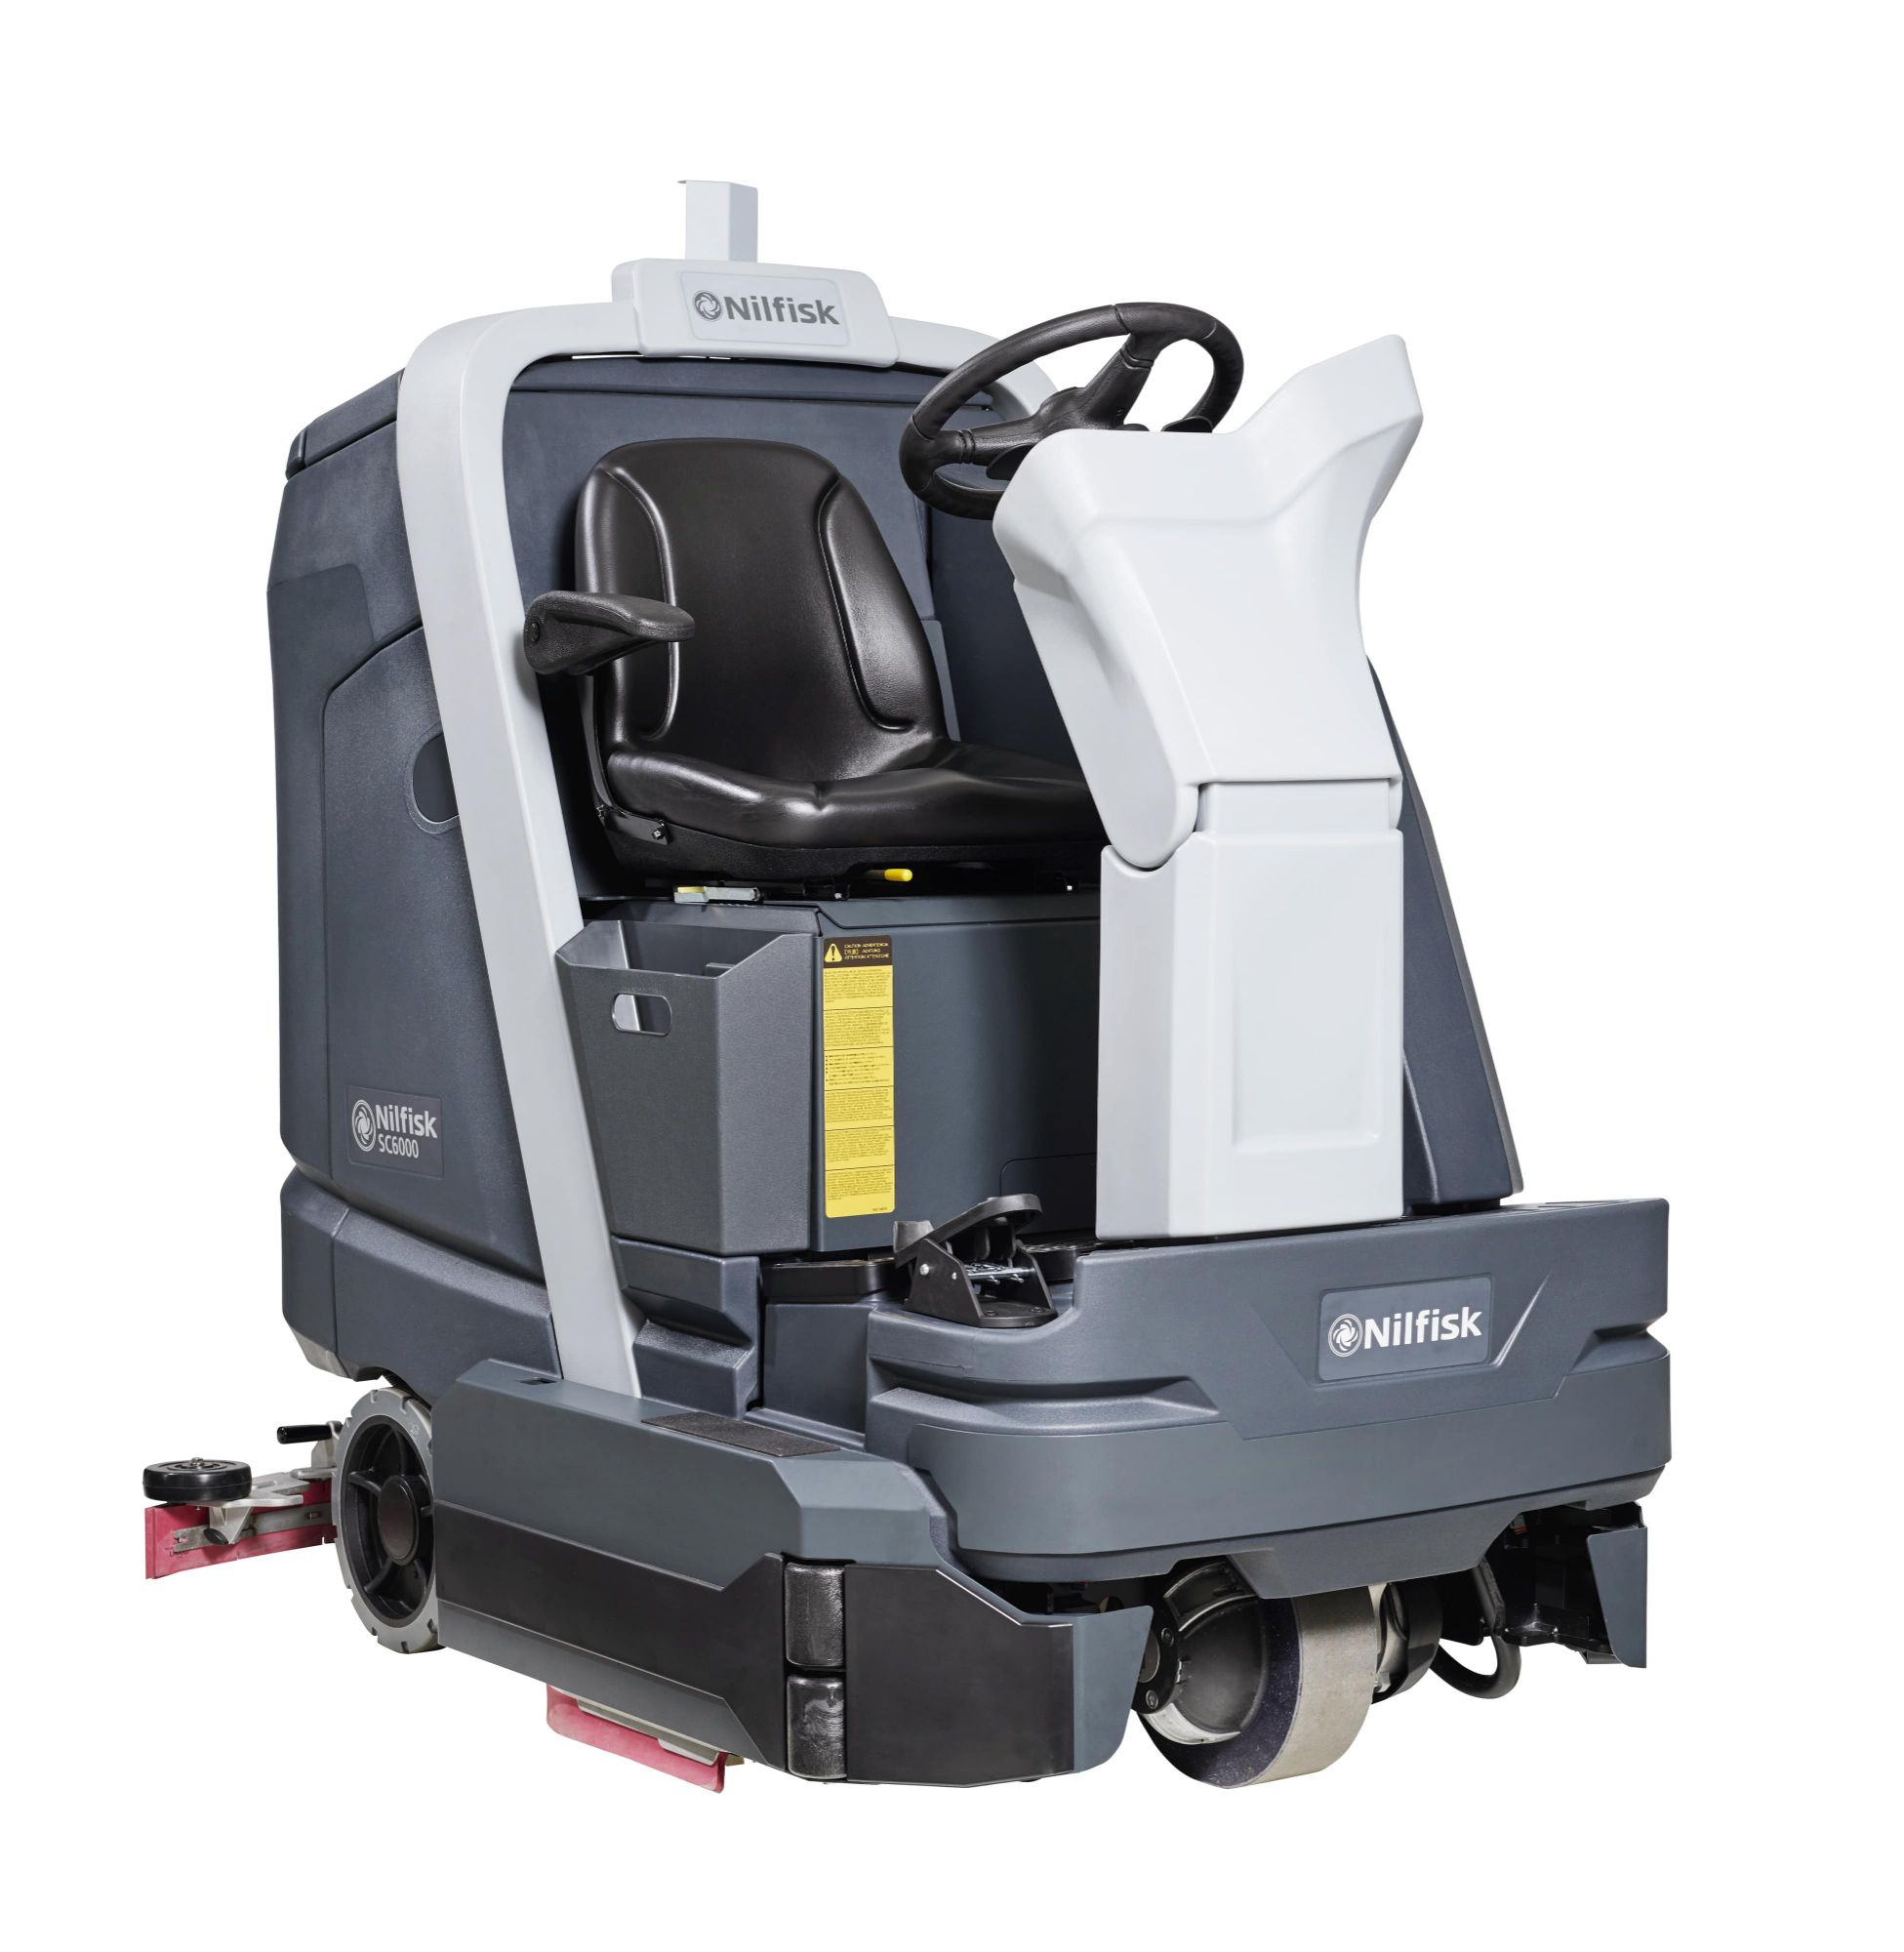 Nilfisk SC6000 Ride On Scrubber Dryer